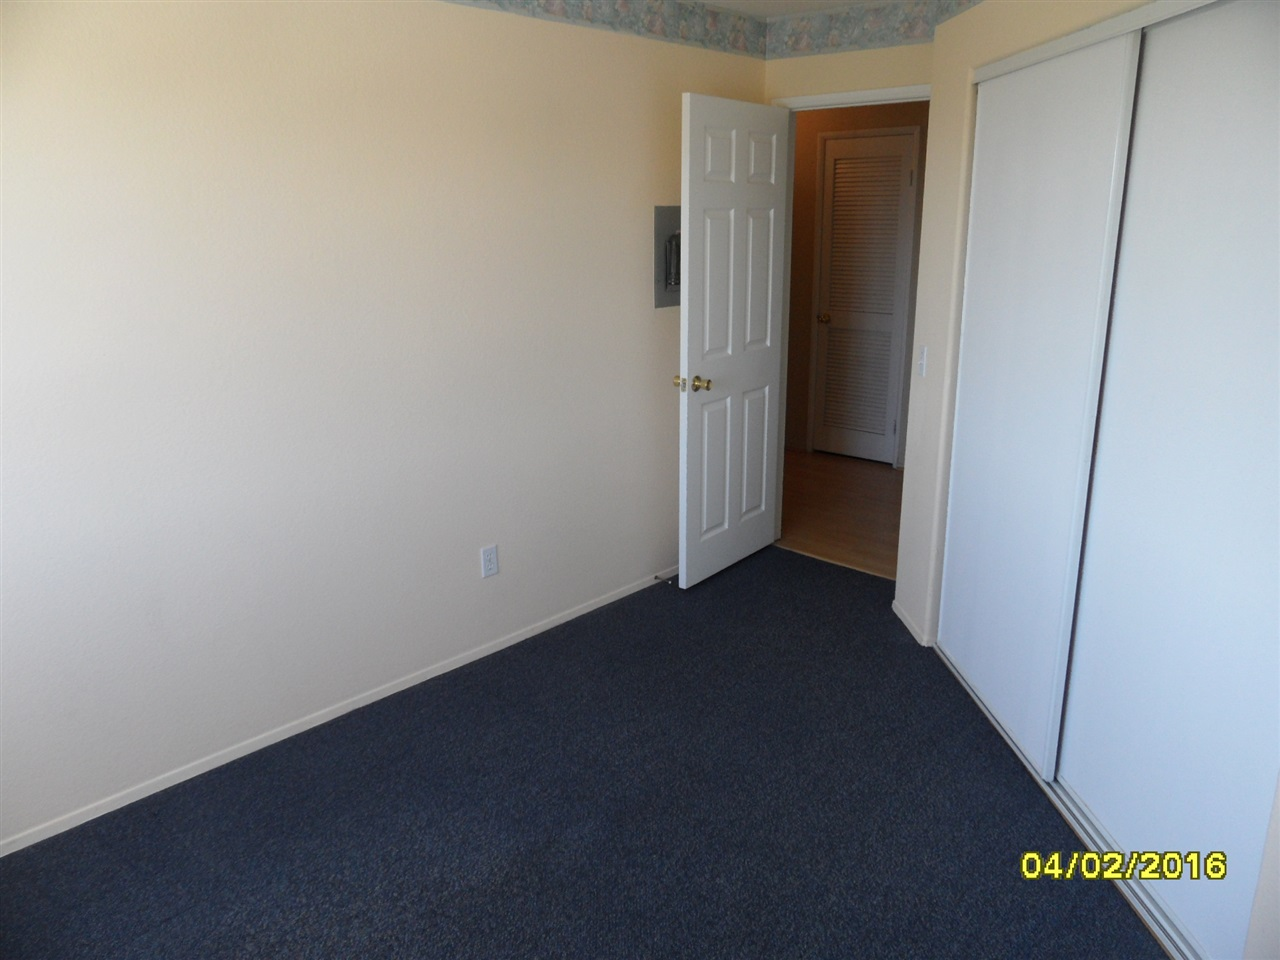 Photo 12: LINDA VISTA Condo for sale : 3 bedrooms : 2012 Coolidge St #93 in San Diego